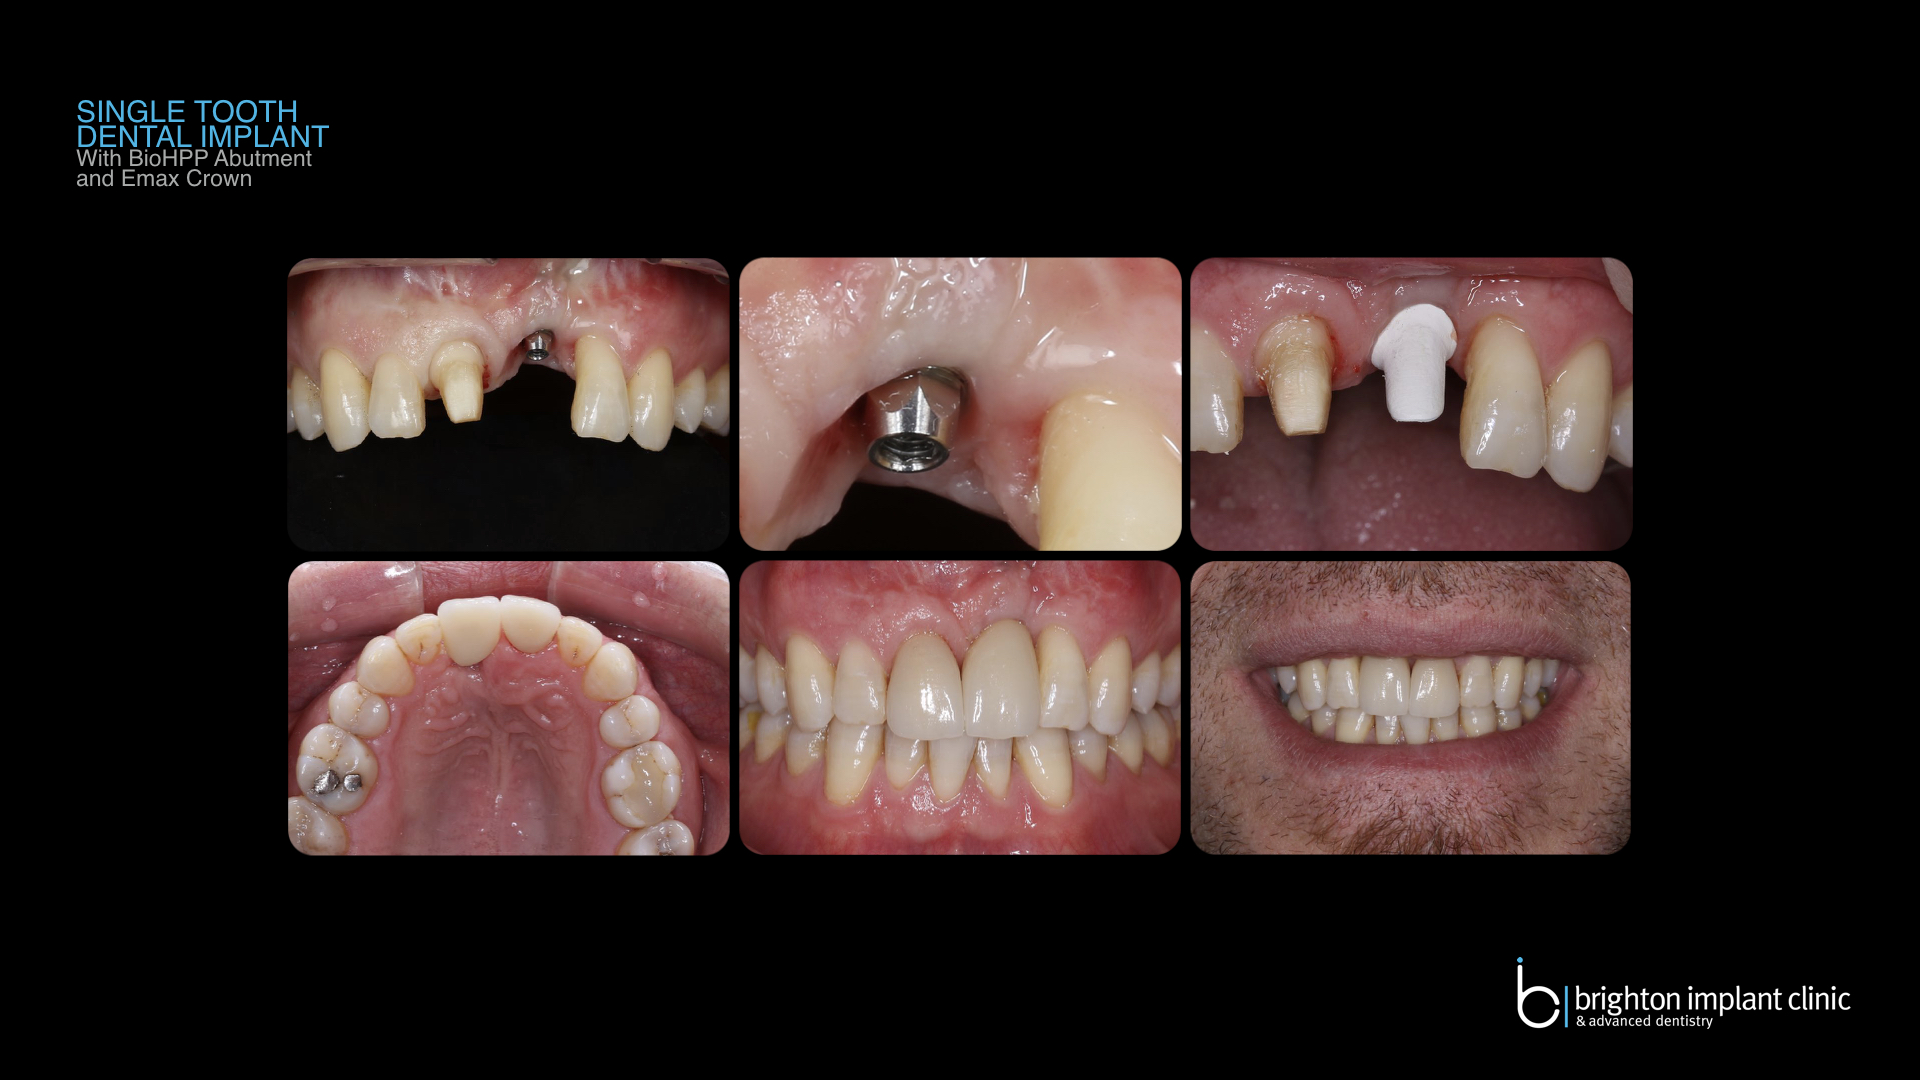 replacement of single tooth with dental implant, complications of implants